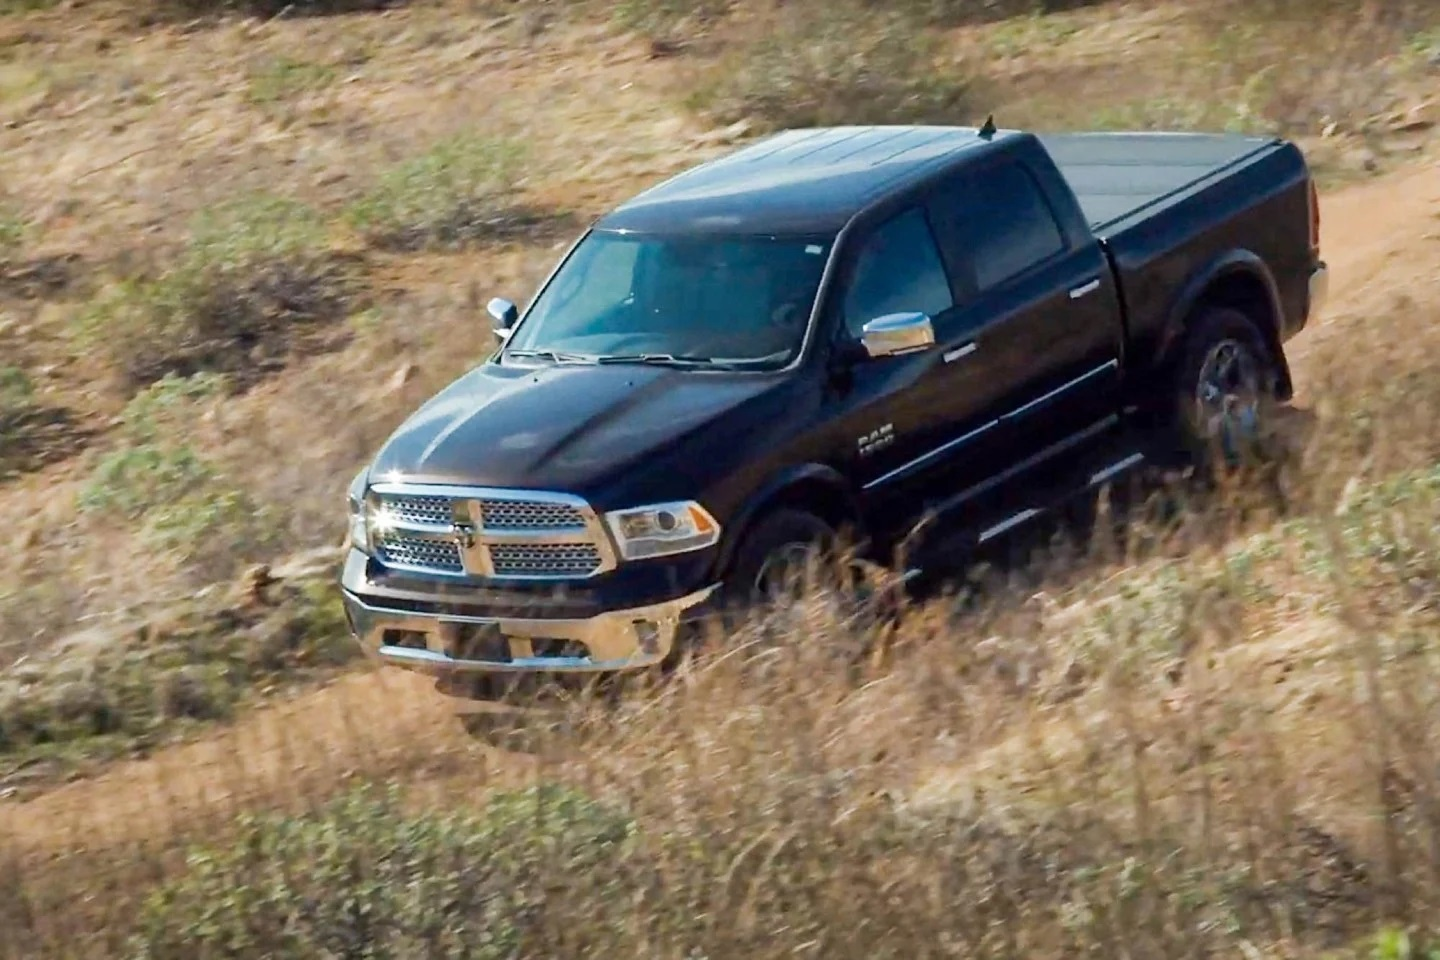 The General Tire Grabber APT would be a good tire for a full-size pickup truck that sees an occasional dirt road, but also hauls a trailer or boat on a regular basis.